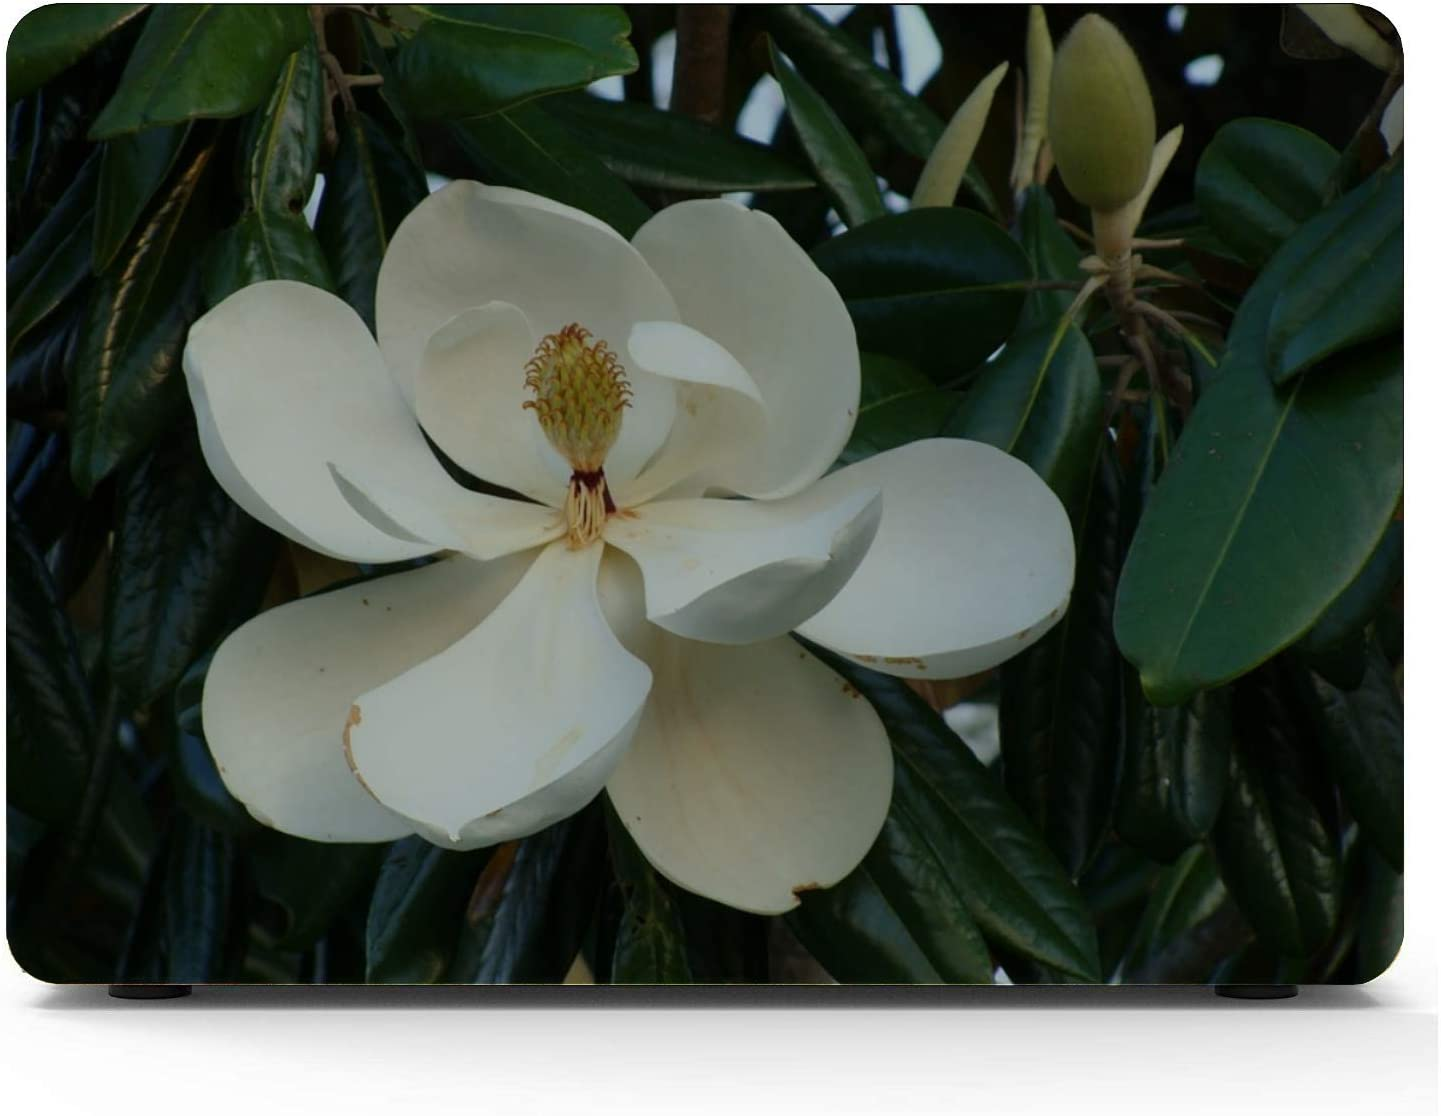 Laptop Pro Accessories Magnolia Tree Magnolia Blossom Flower Plant Leaves MacBook Air Case 2018 Hard Shell Mac Air 11//13 Pro 13//15//16 with Notebook Sleeve Bag for MacBook 2008-2020 Version